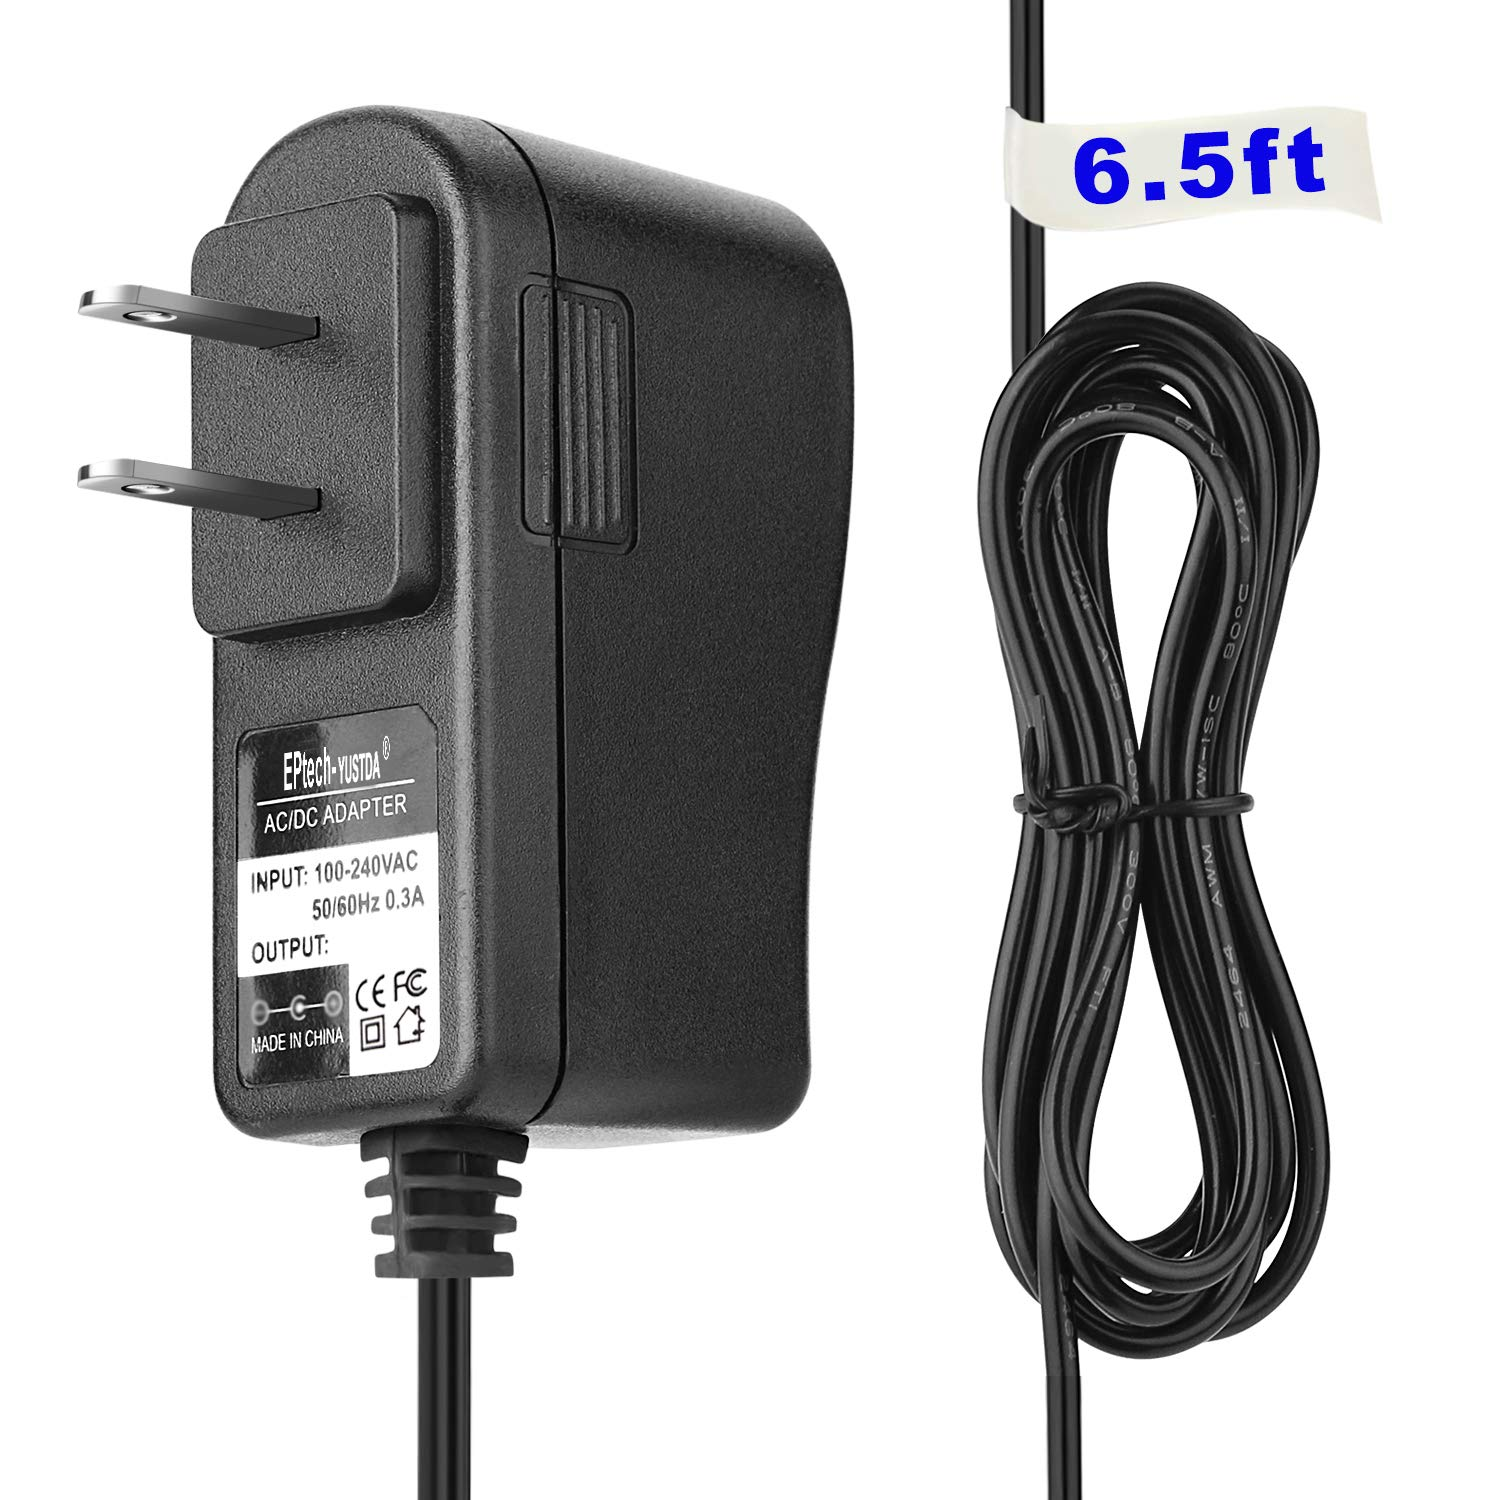 AC/DC Adapter Replacement for Pool Blaster MAX, MAX HD, IVAC M3, IVAC 350, and Speed VAC PBA099-US-EU-QUICK Charge Battery Charger Power Supply Cord Cable PS Mains PSU